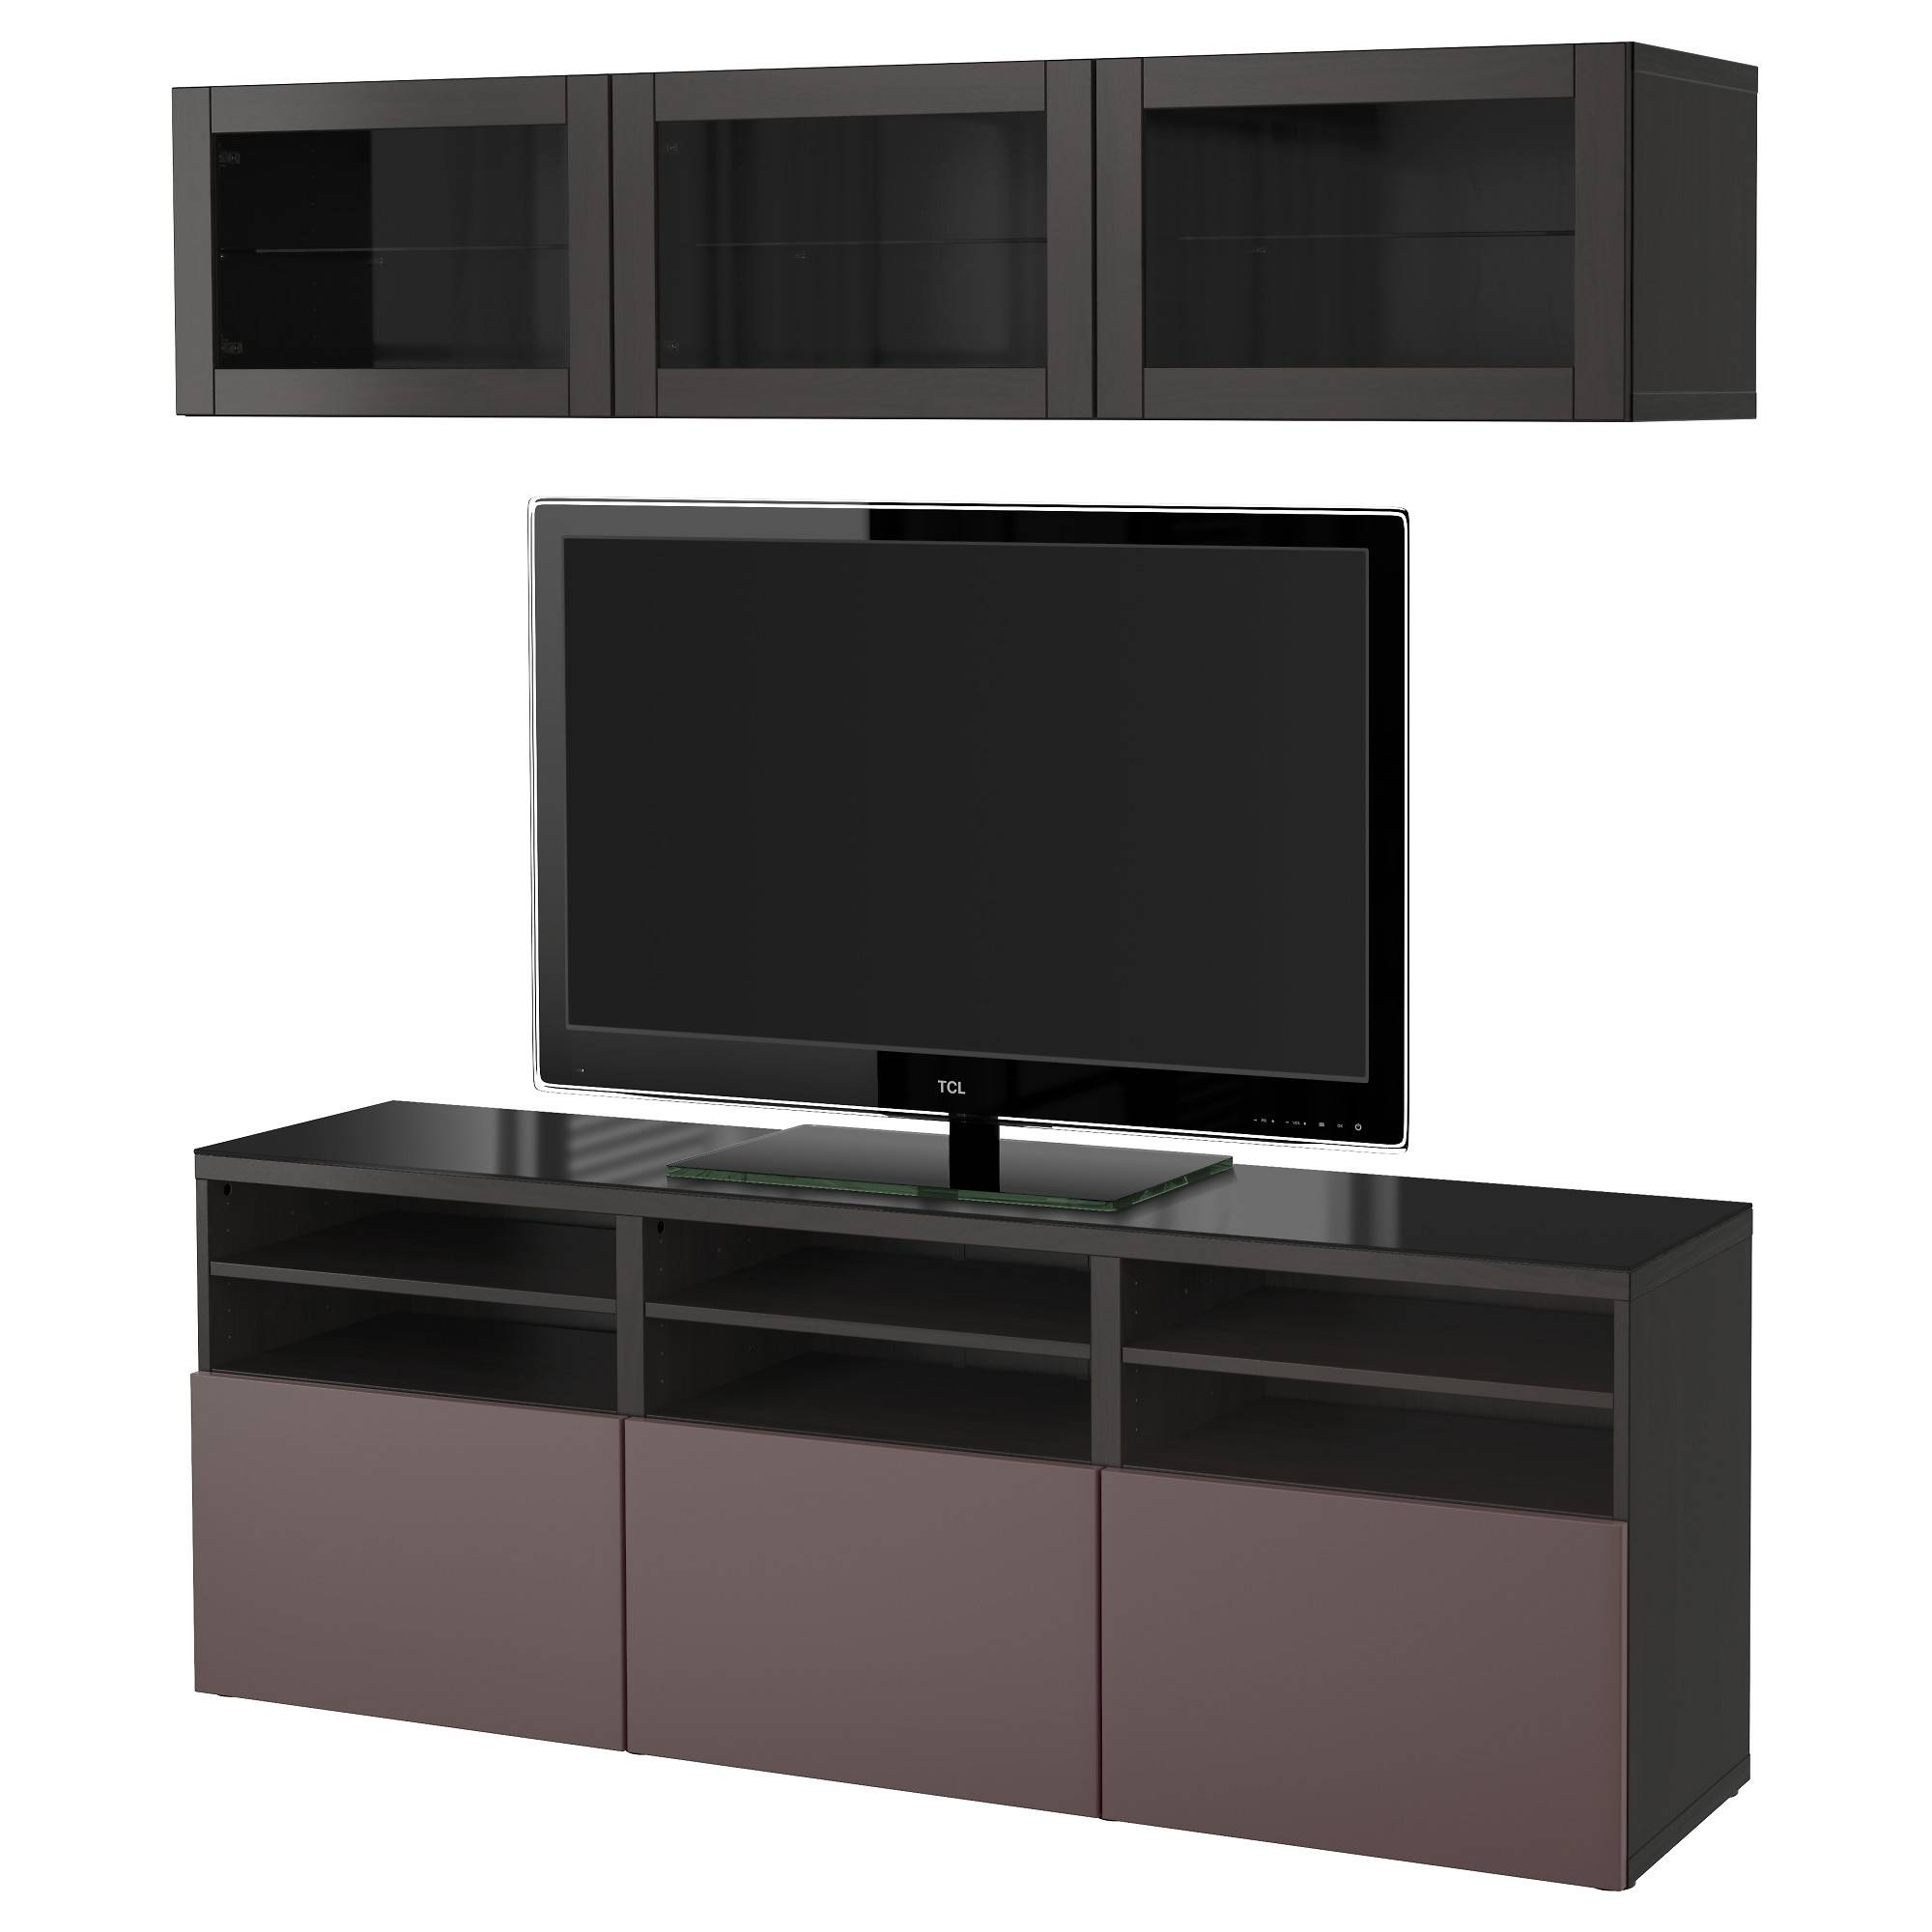 Tv Storage Unit | Tv Wall Units | Ikea in Single Shelf Tv Stands (Image 14 of 15)